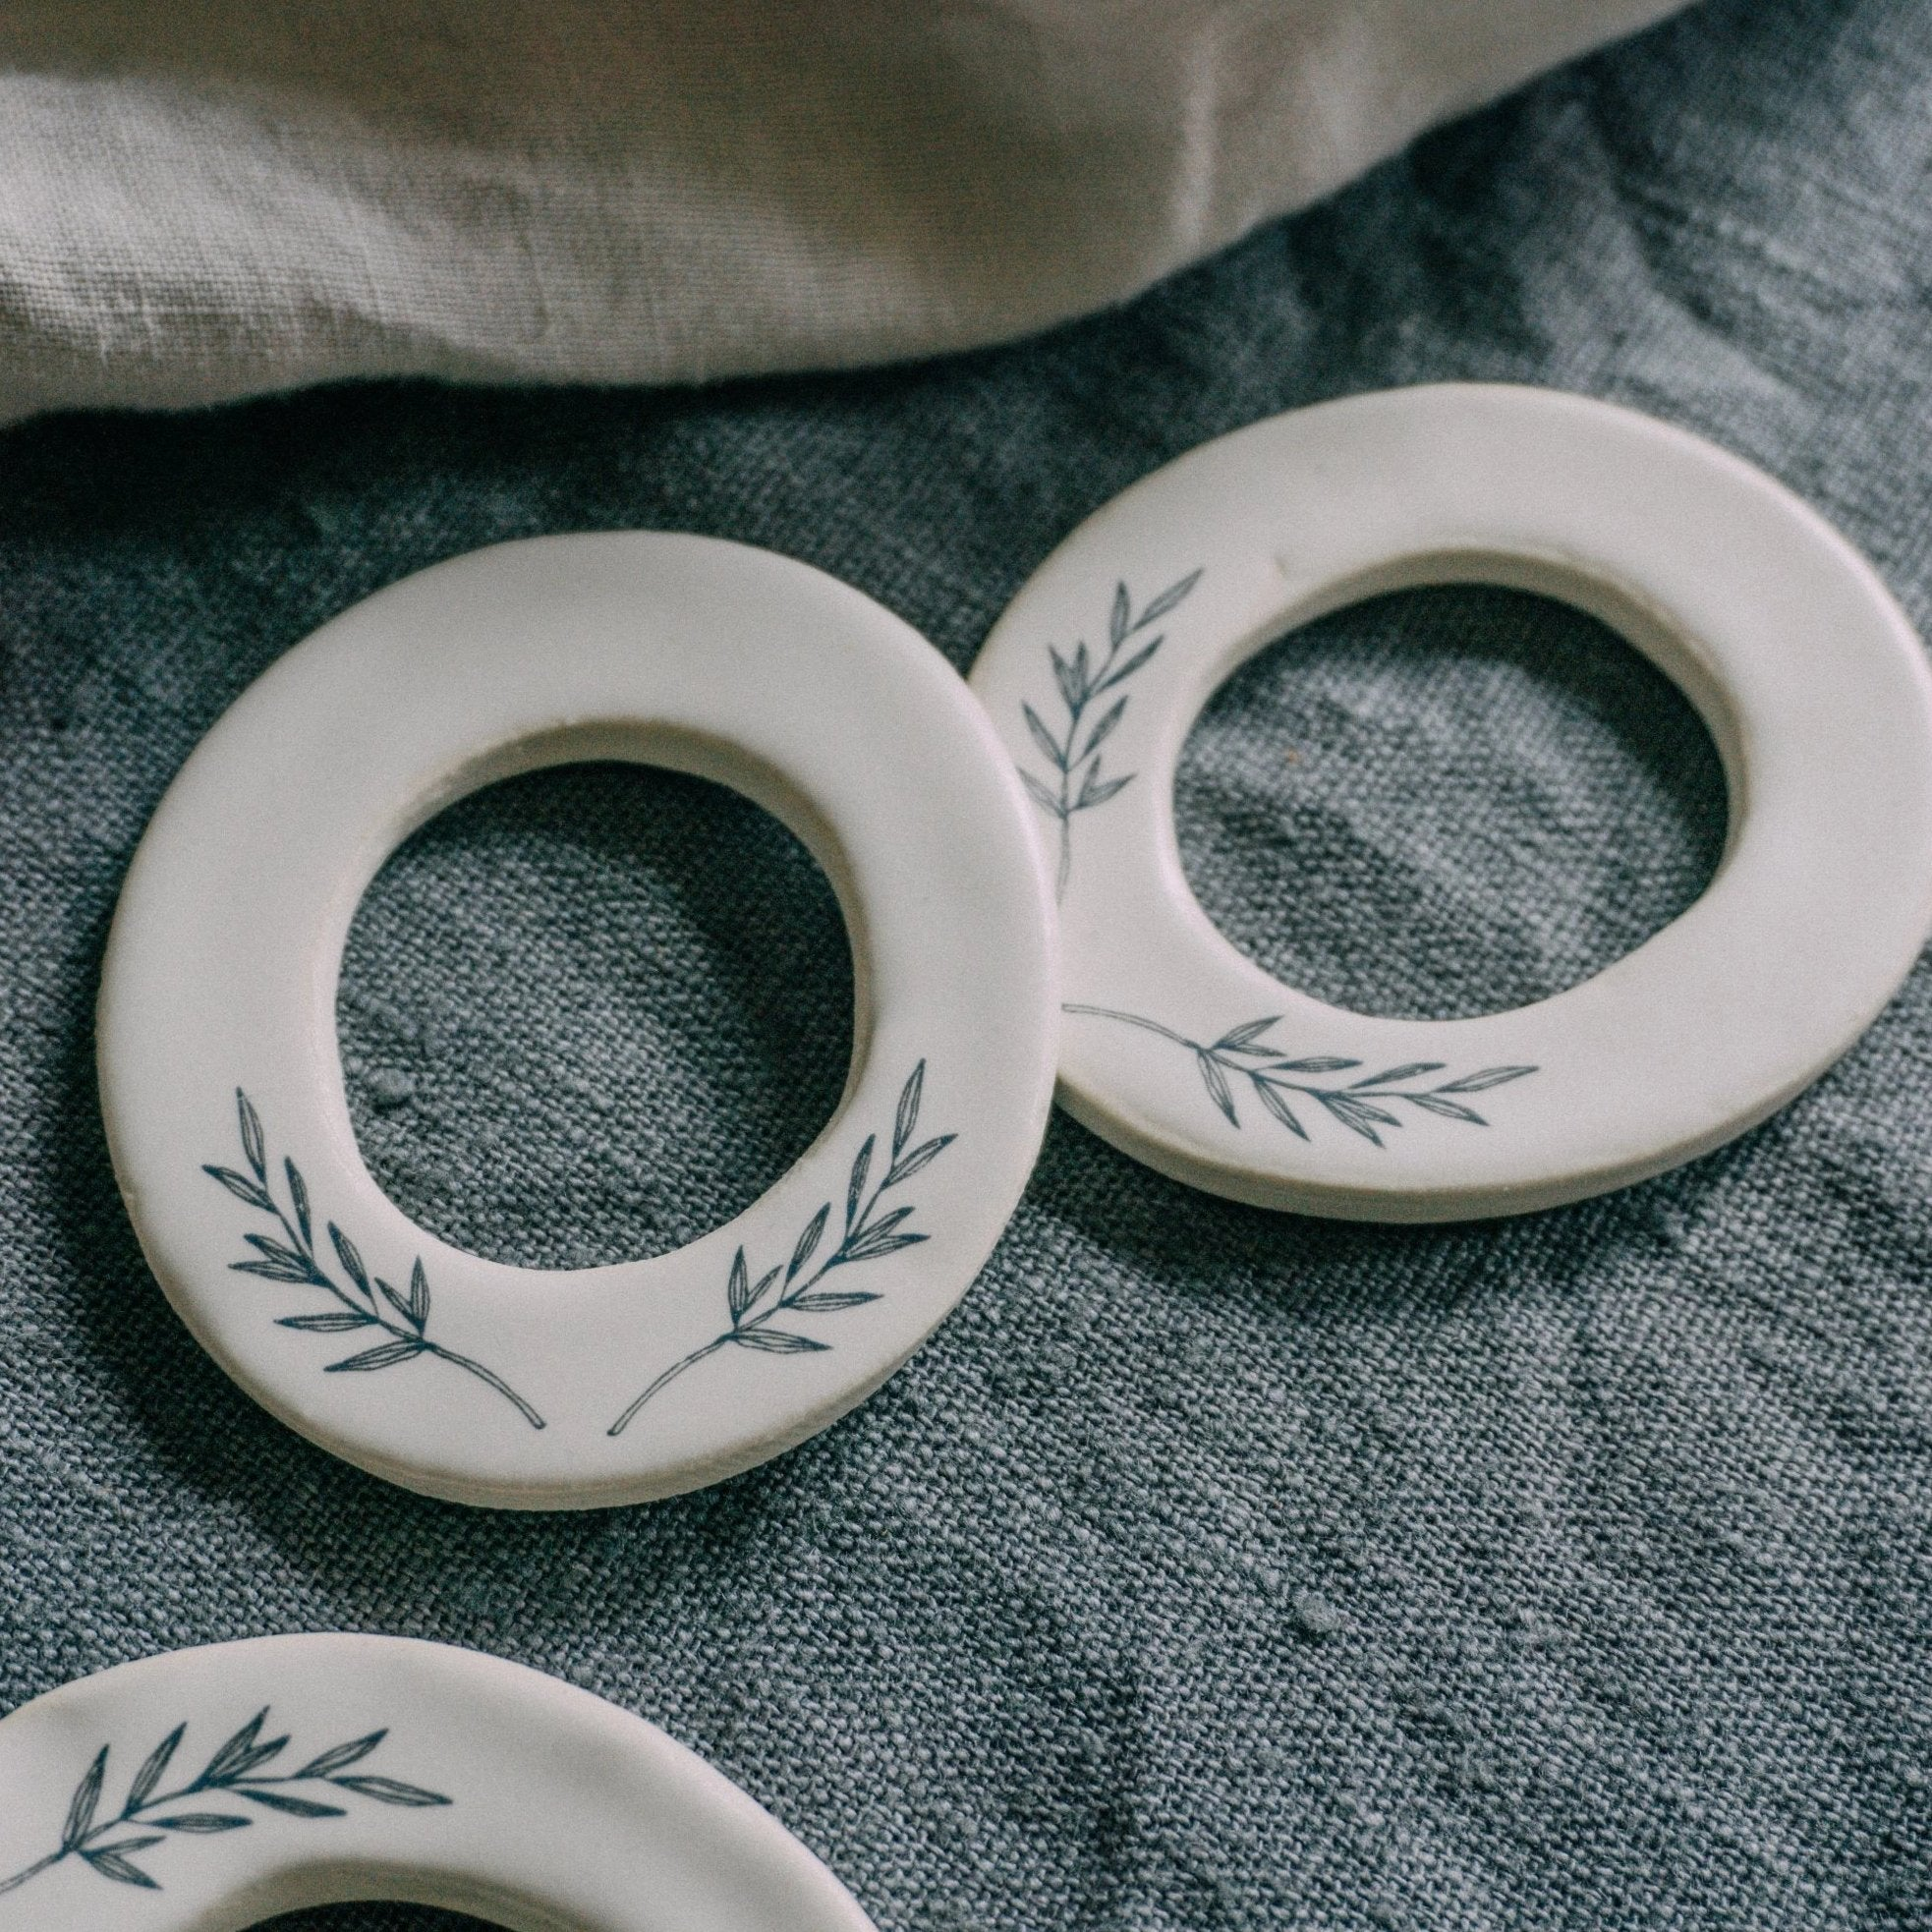 Circular 'Wreath' Ornaments - MMP x NN